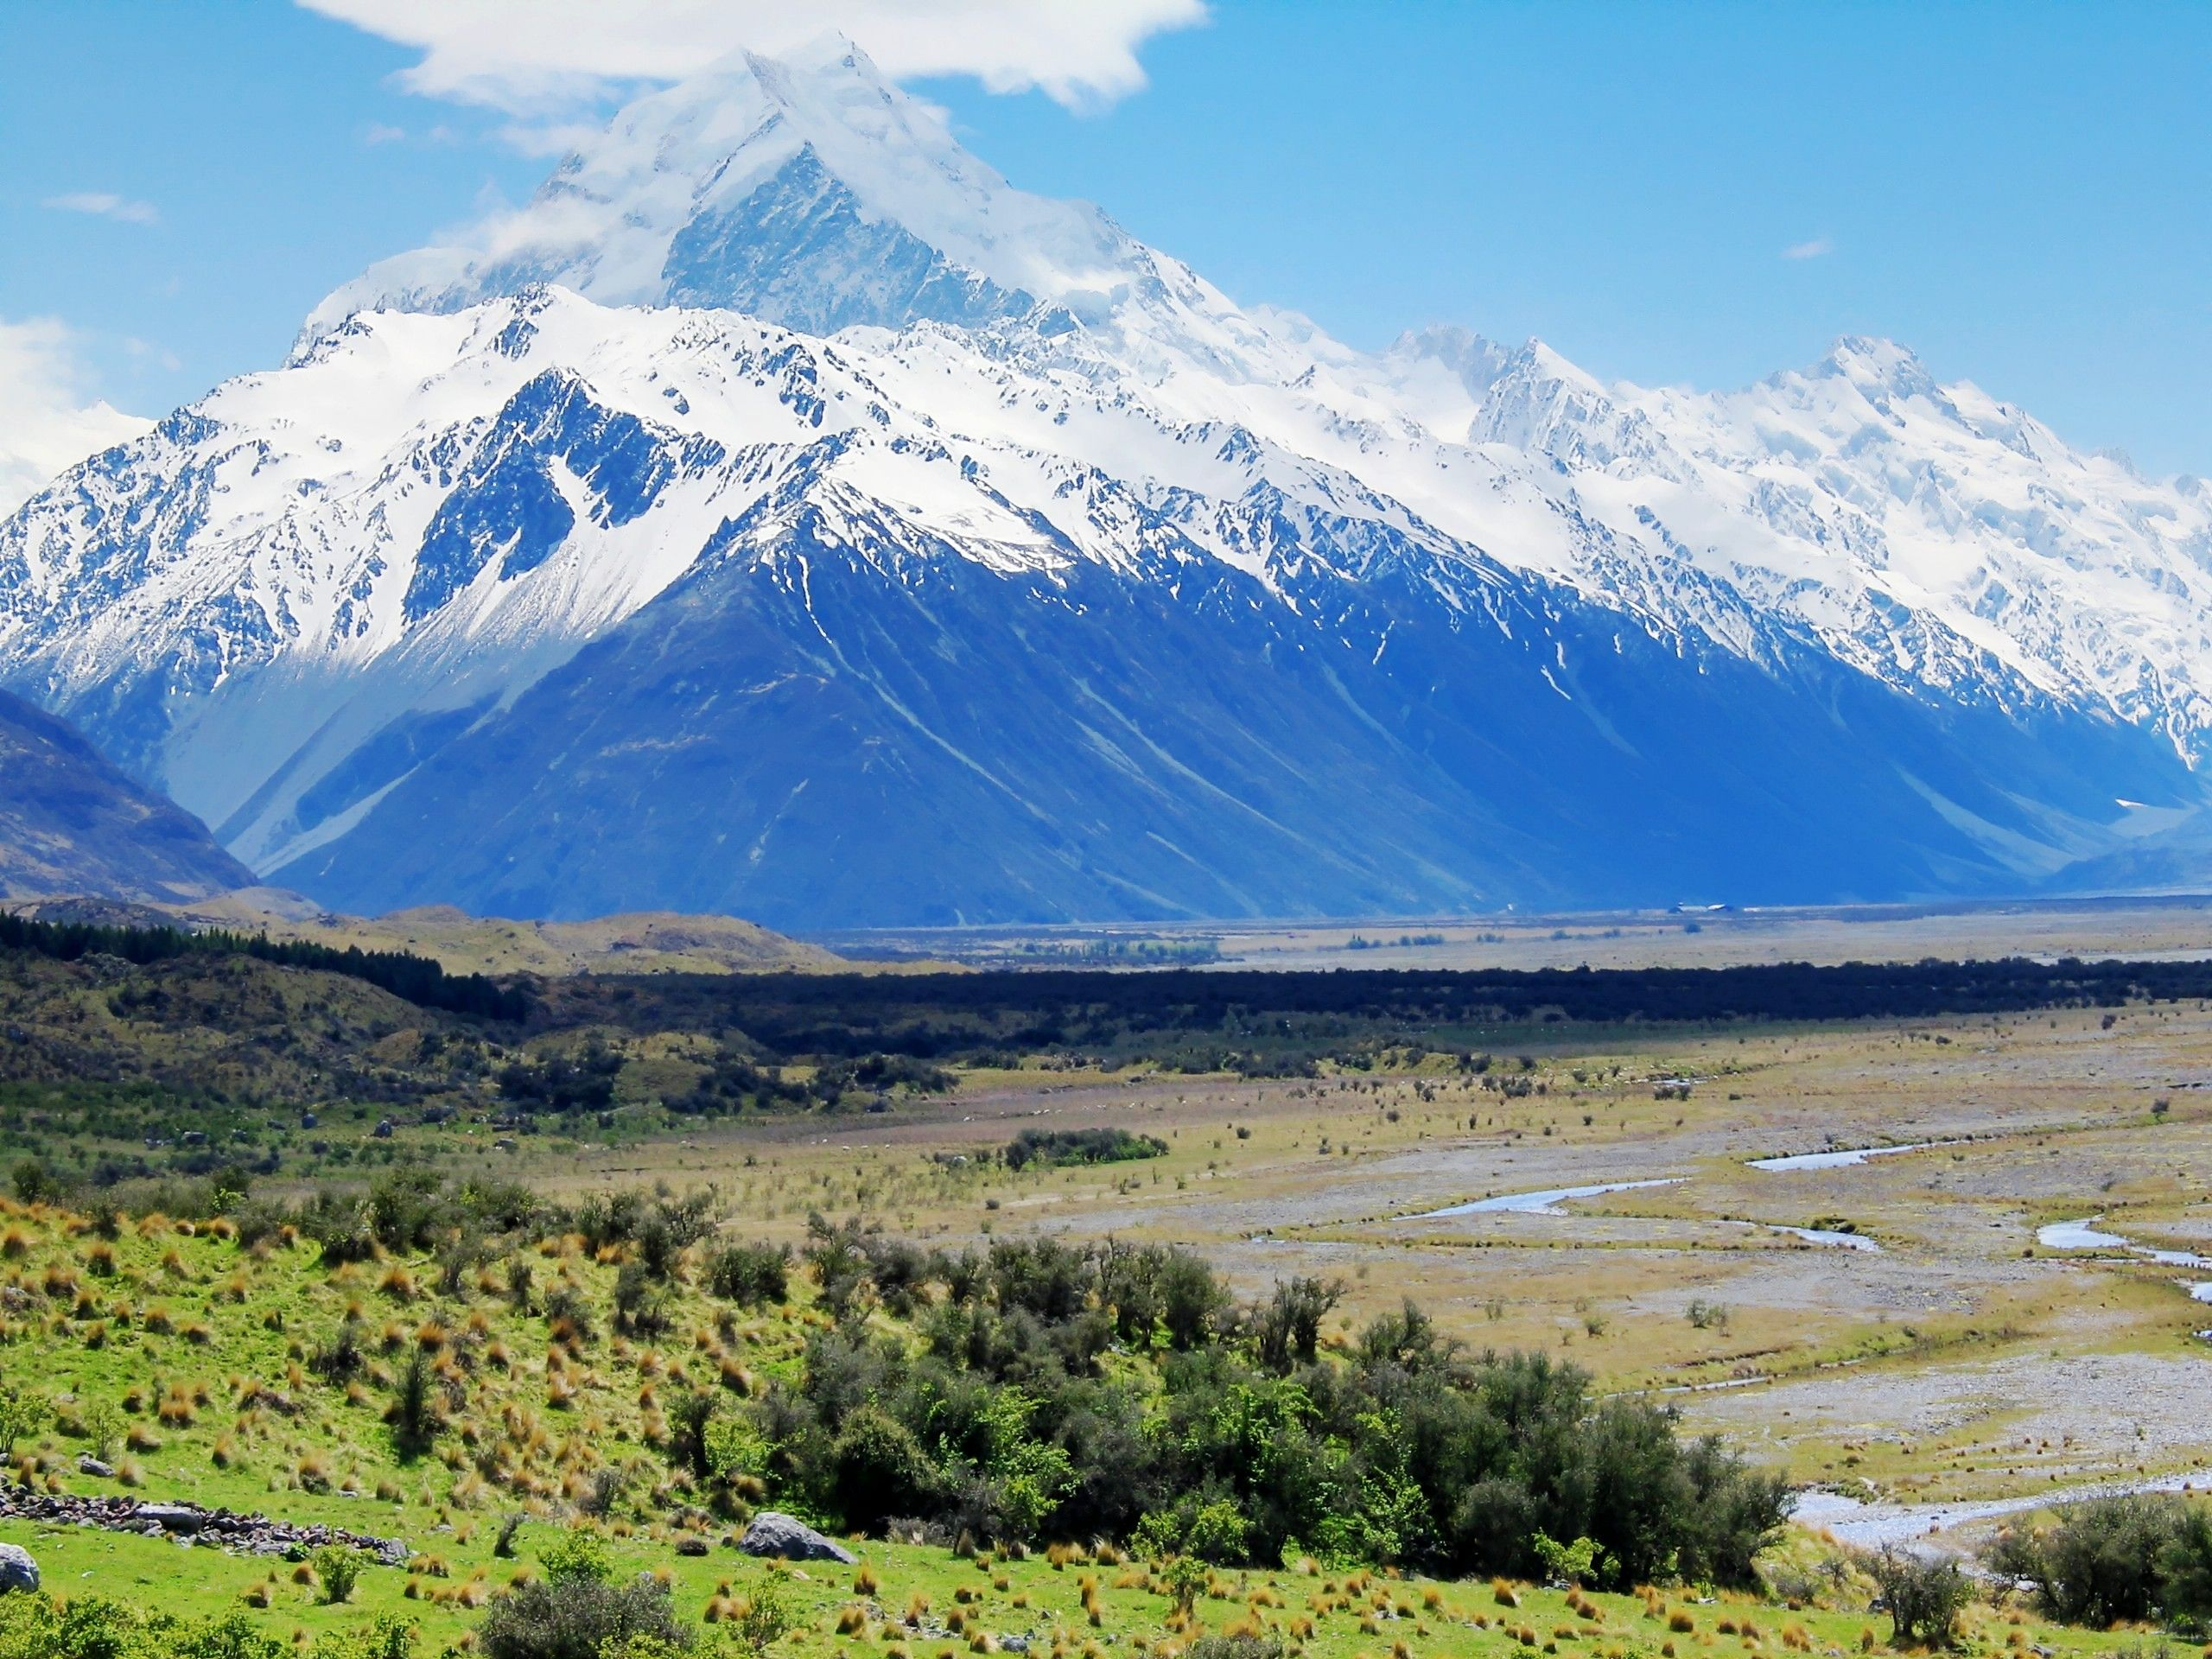 New Zealand....bring me there